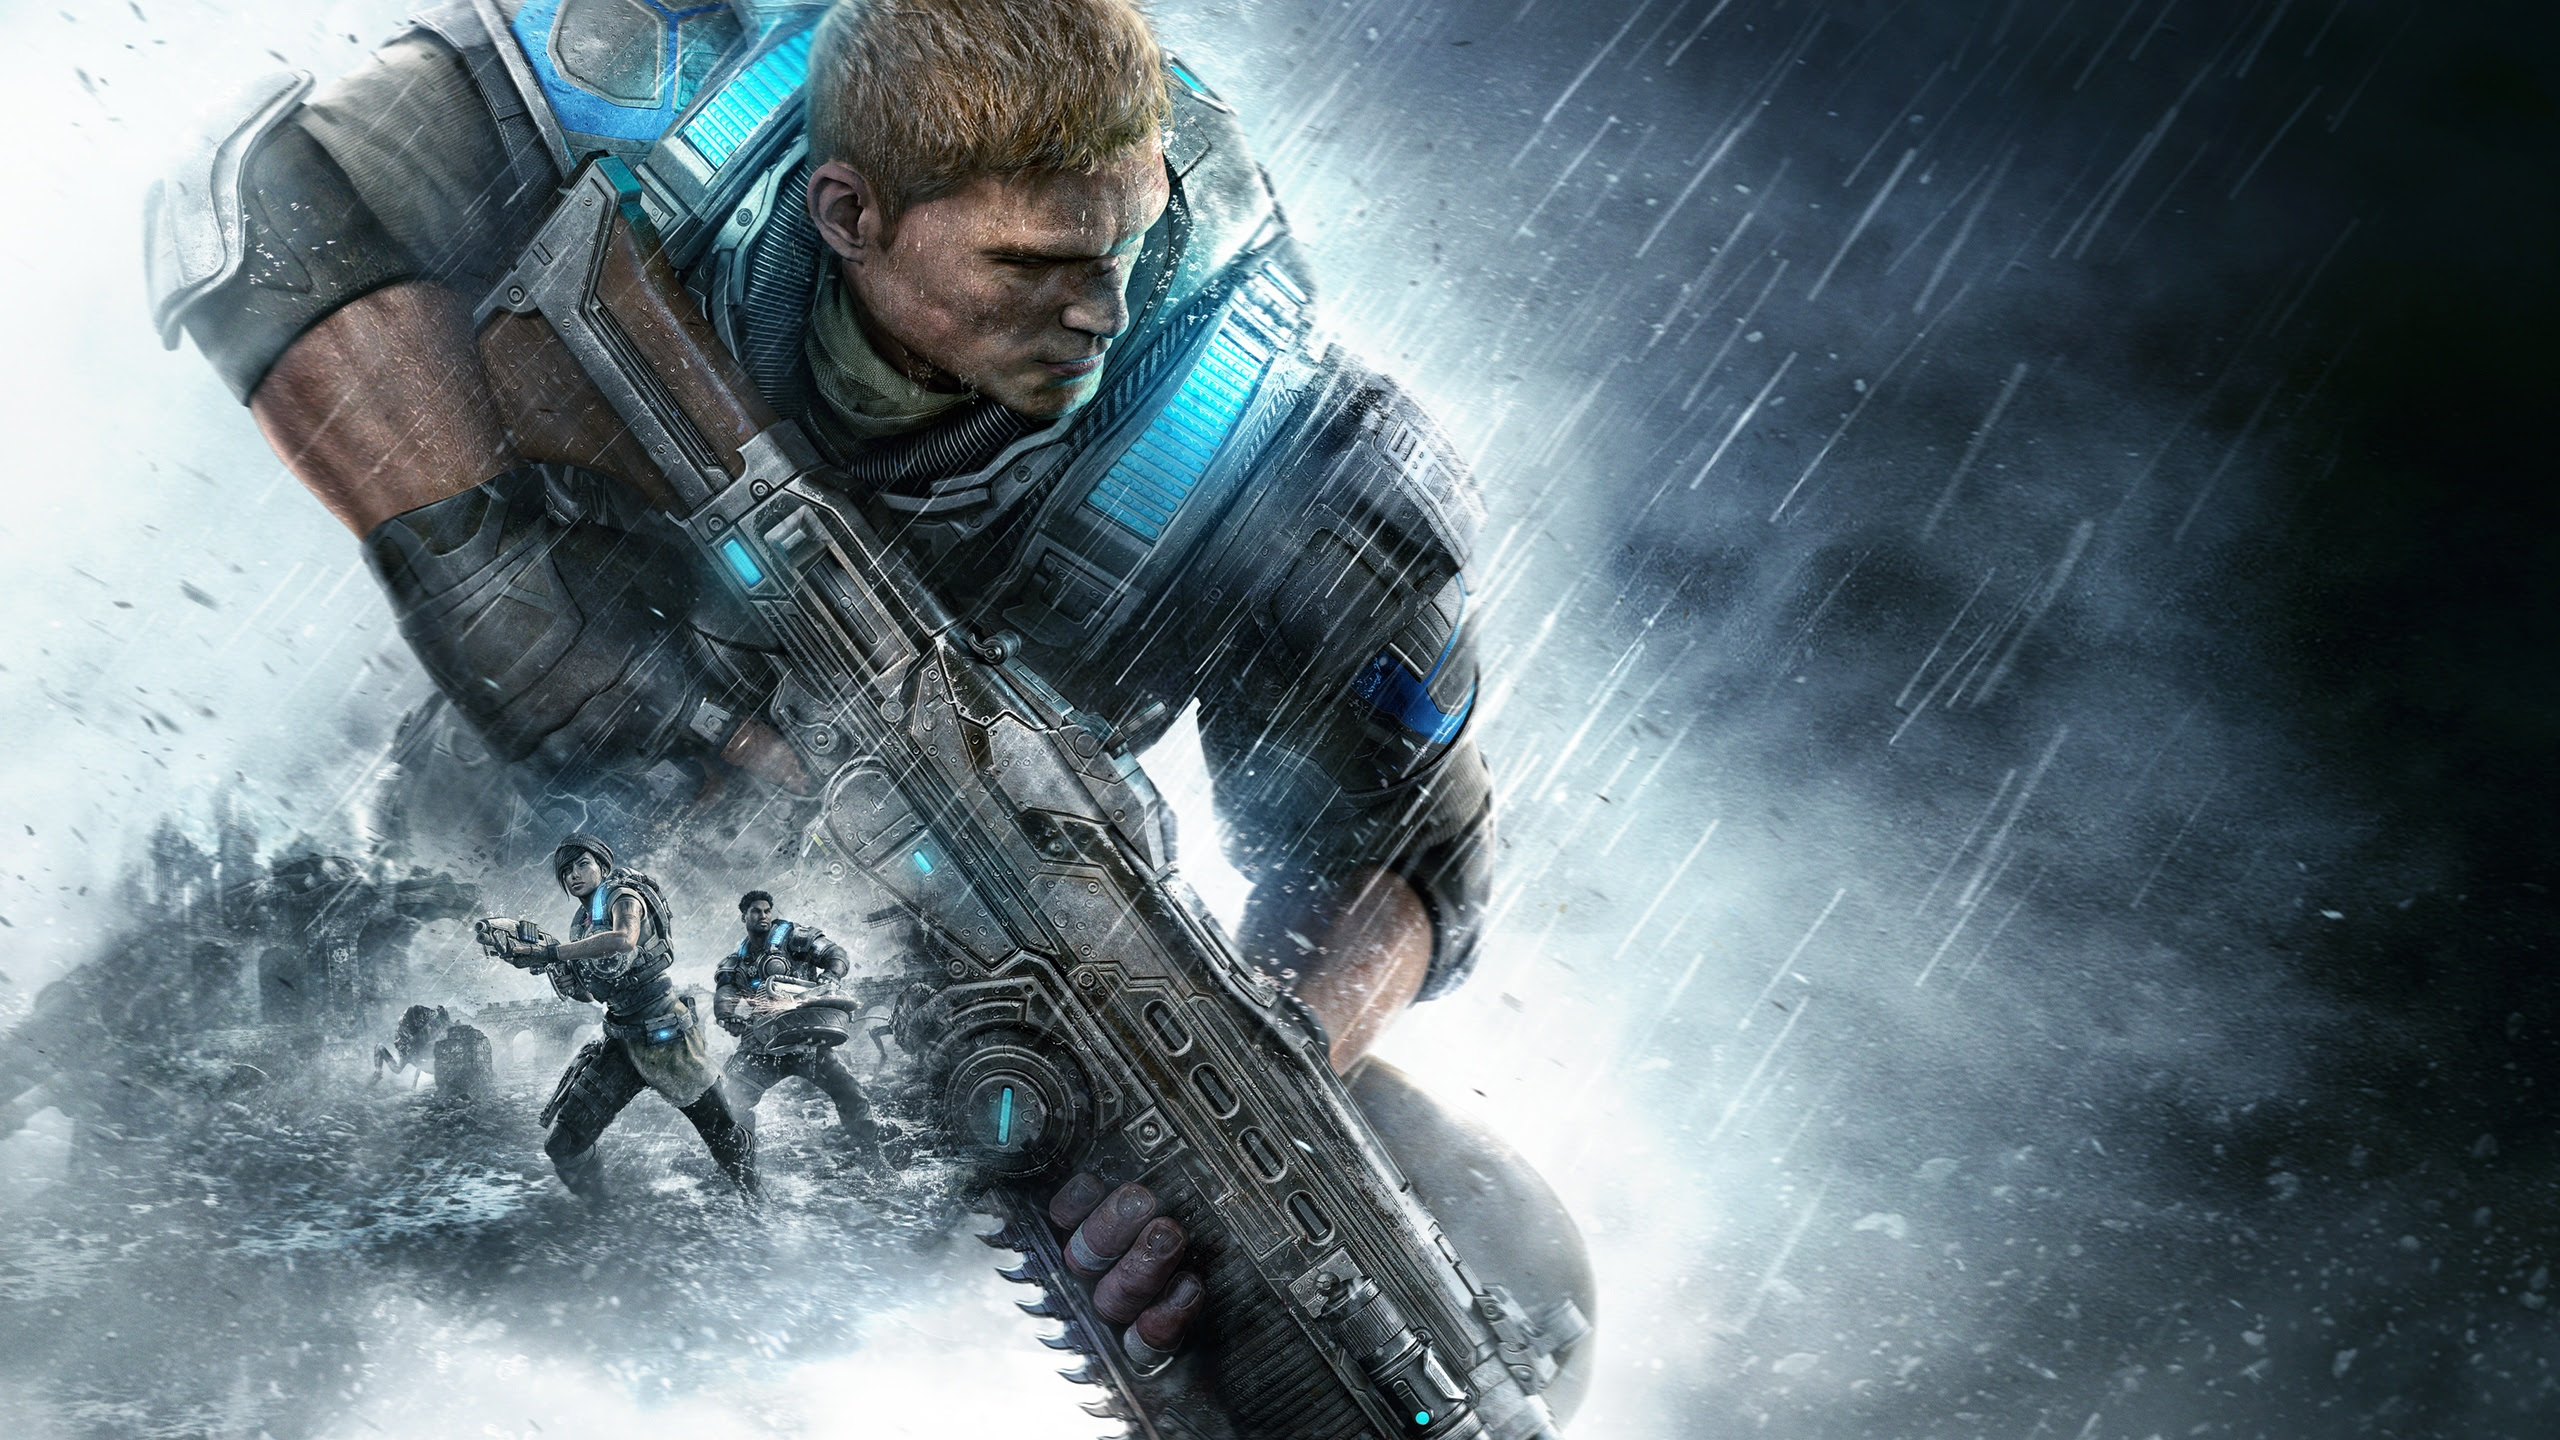 Gears Of War 4 Hd Xbox One Wallpapers In Jpg Format For Free Download